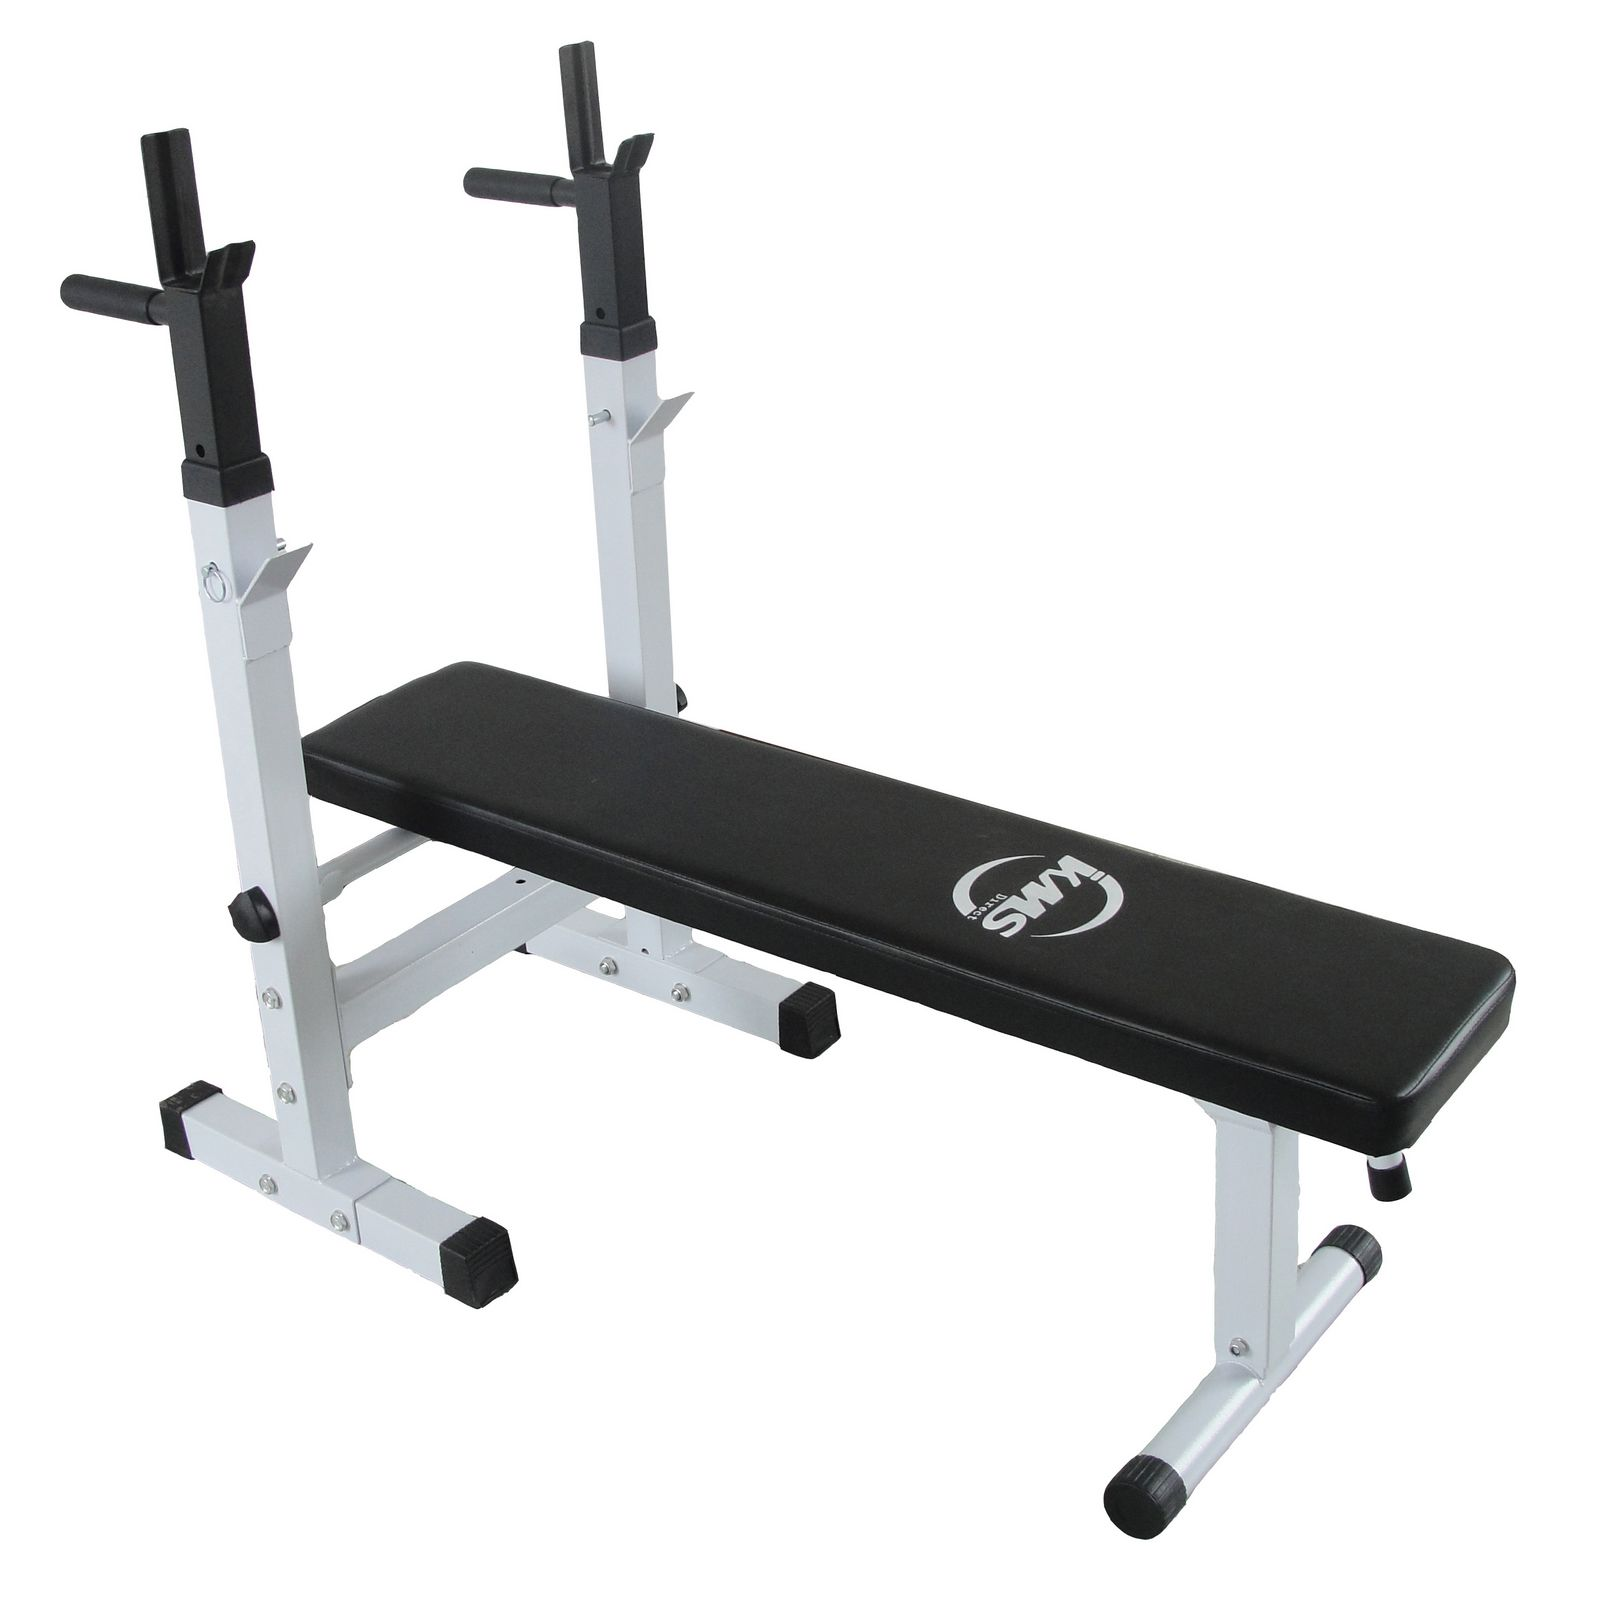 Heavy duty gym shoulder chest press sit up weight bench Bench weights